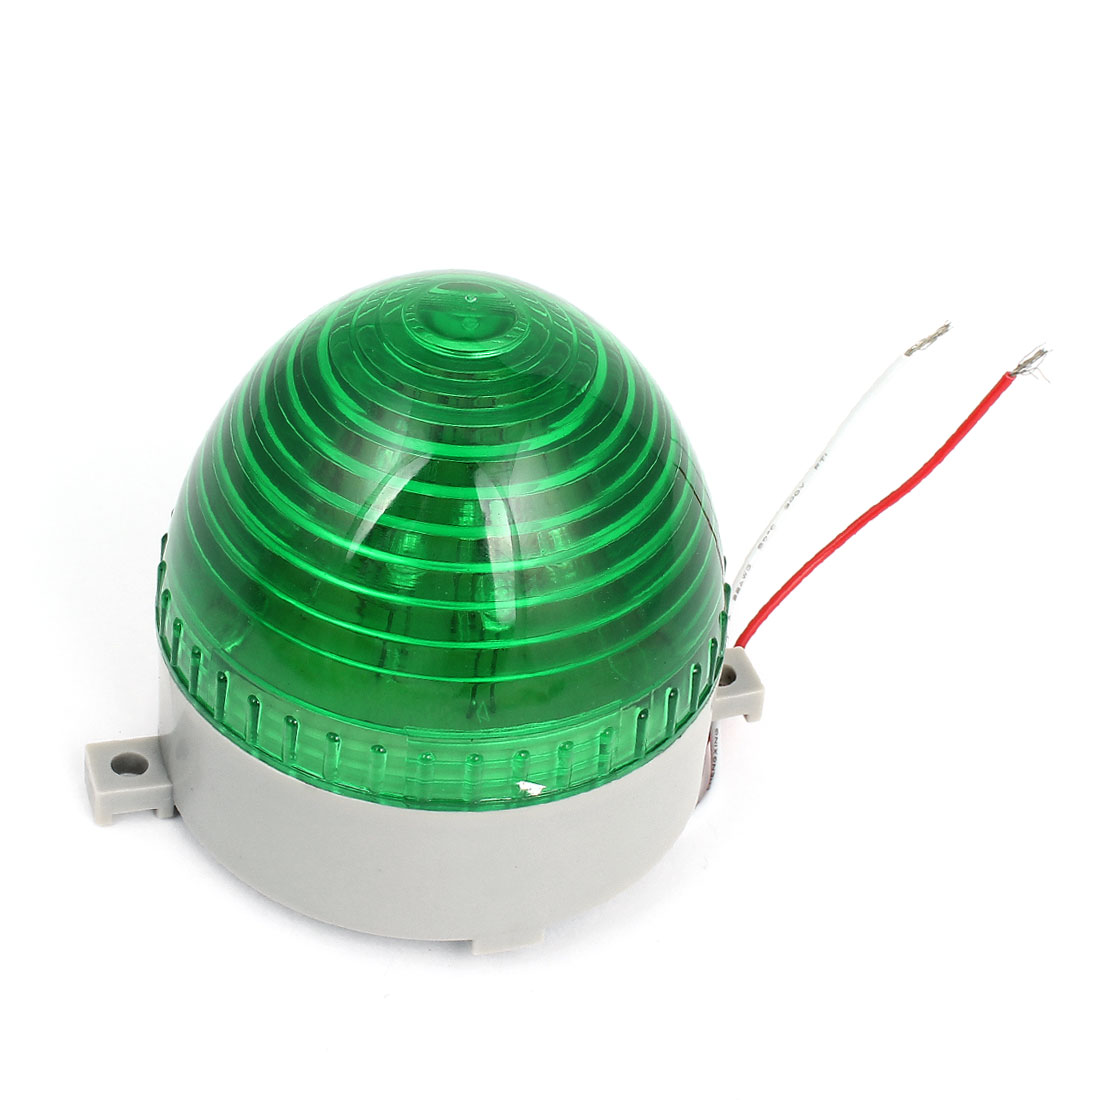 DC 24V Dome Shaped Industrial Emergency Green LED Flash Warning Light